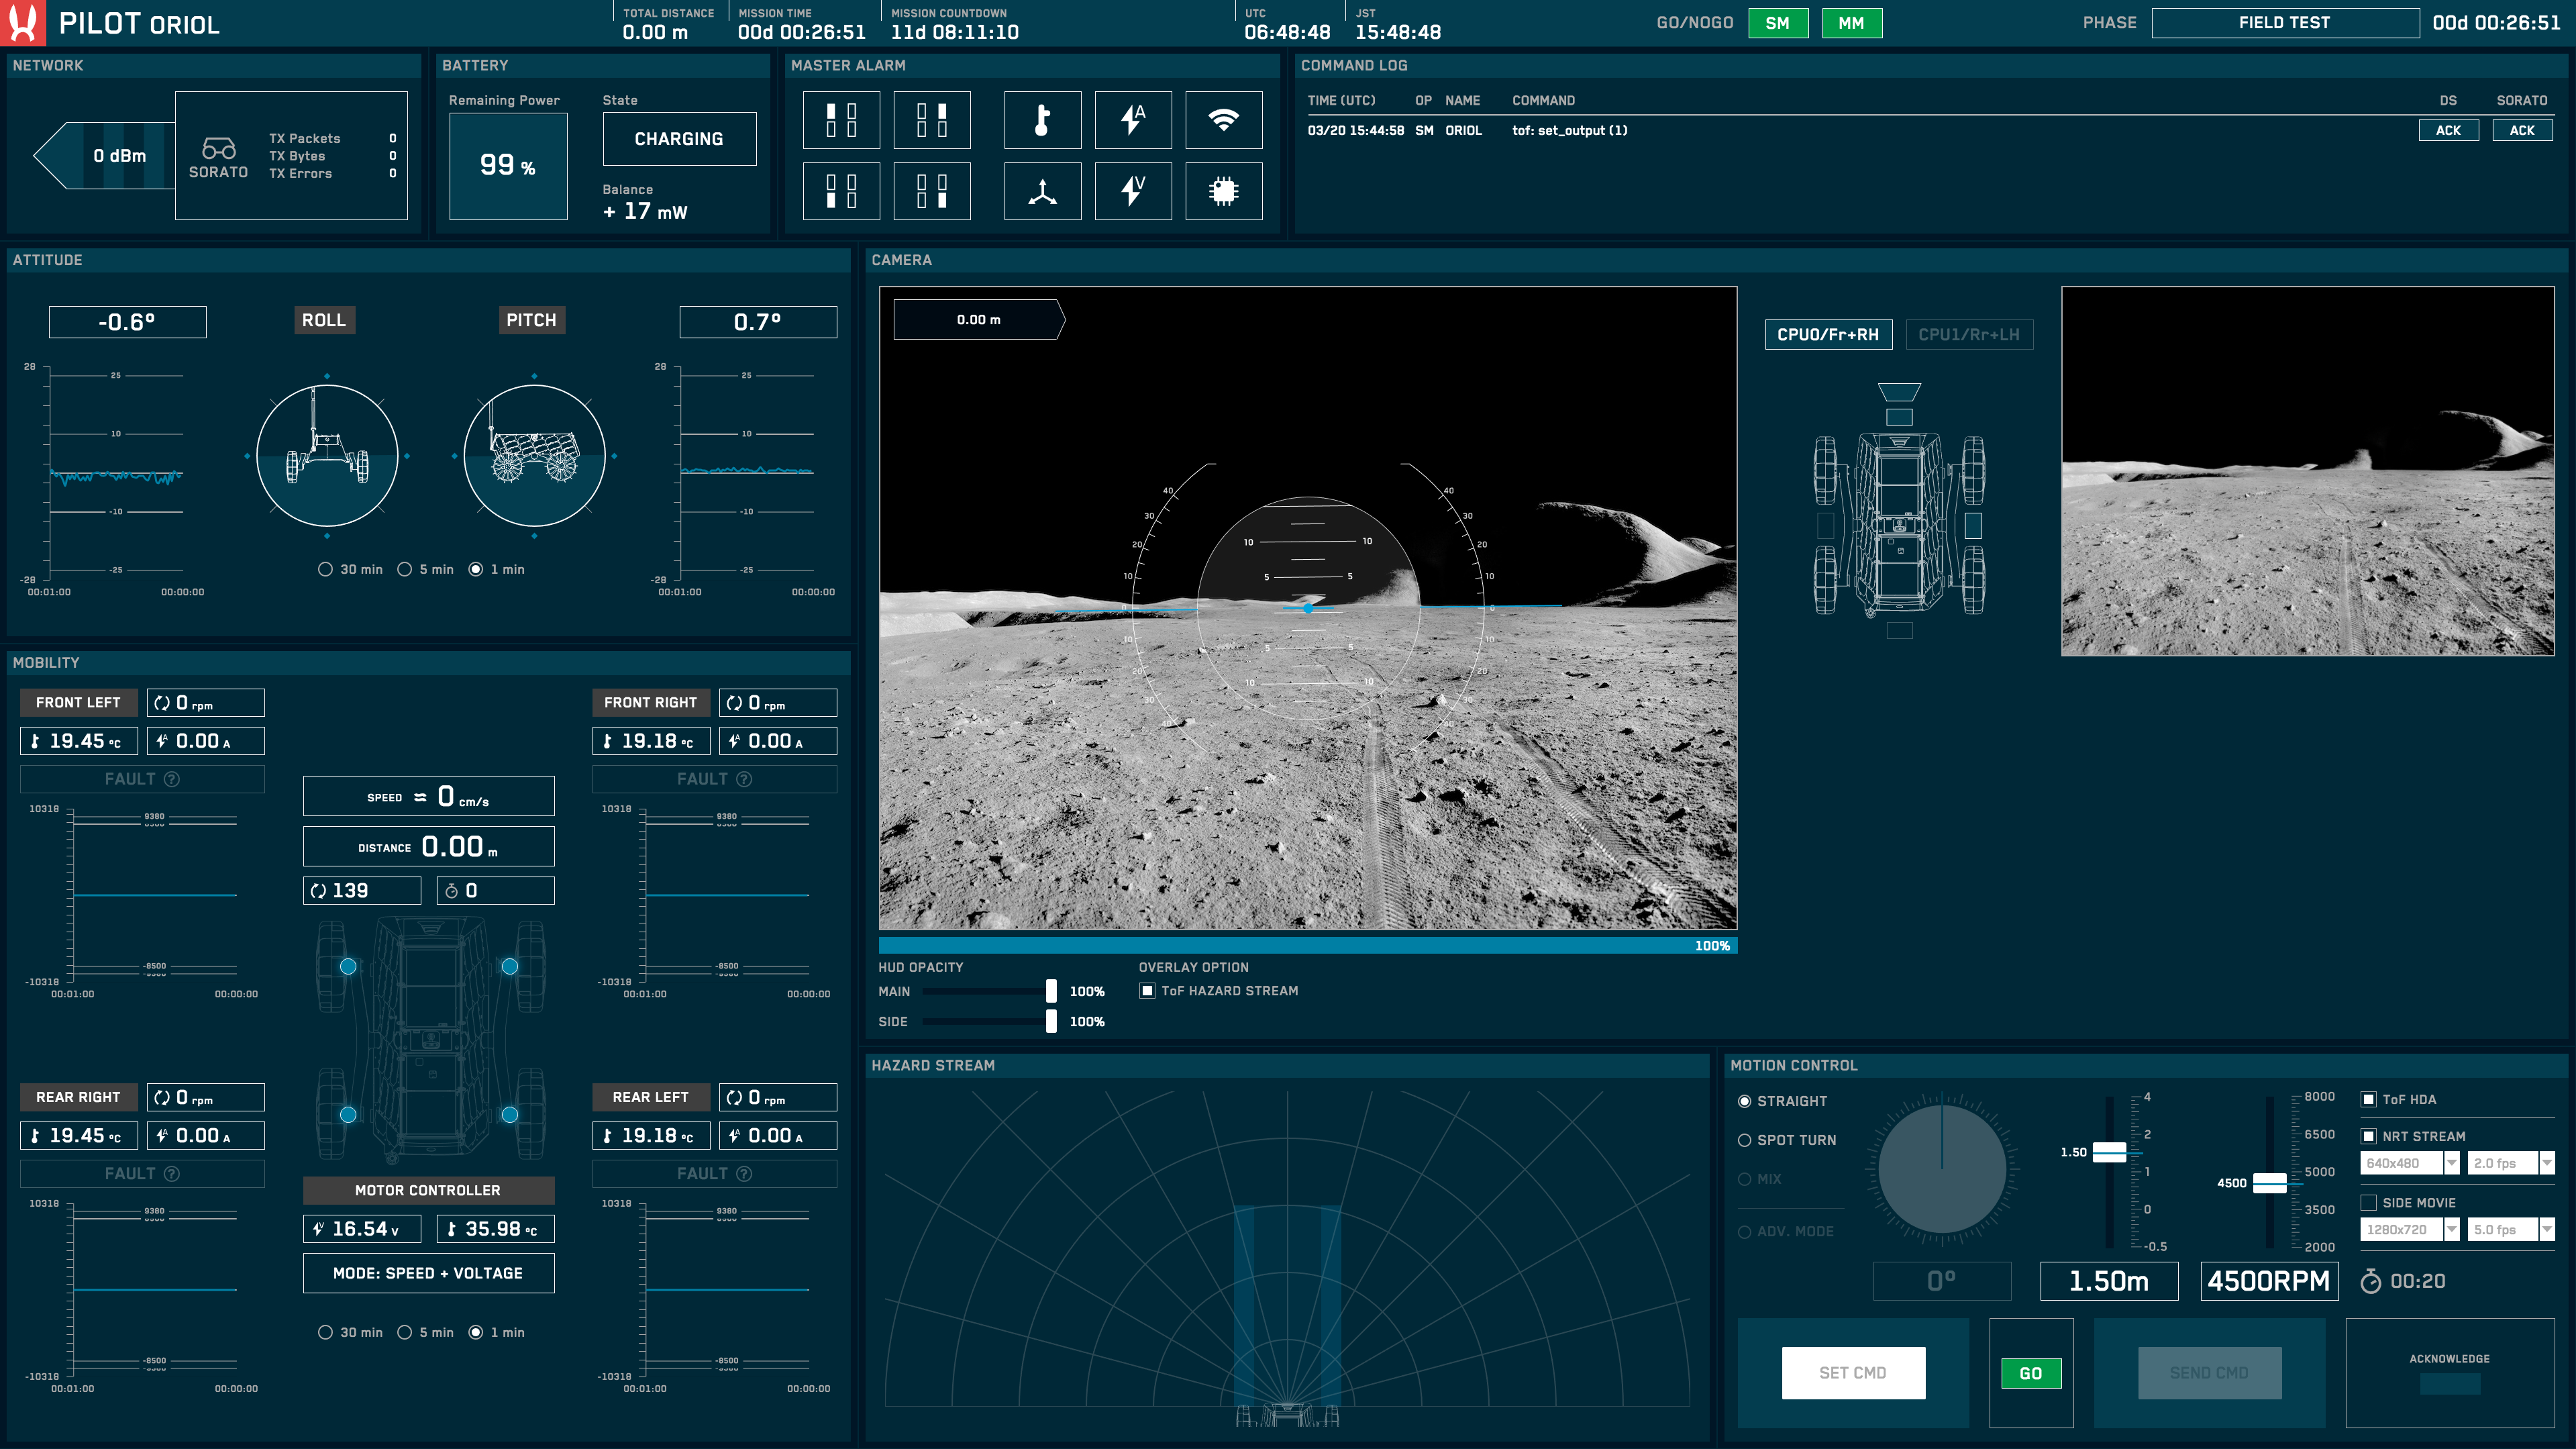 First screen of the Pilot interface.